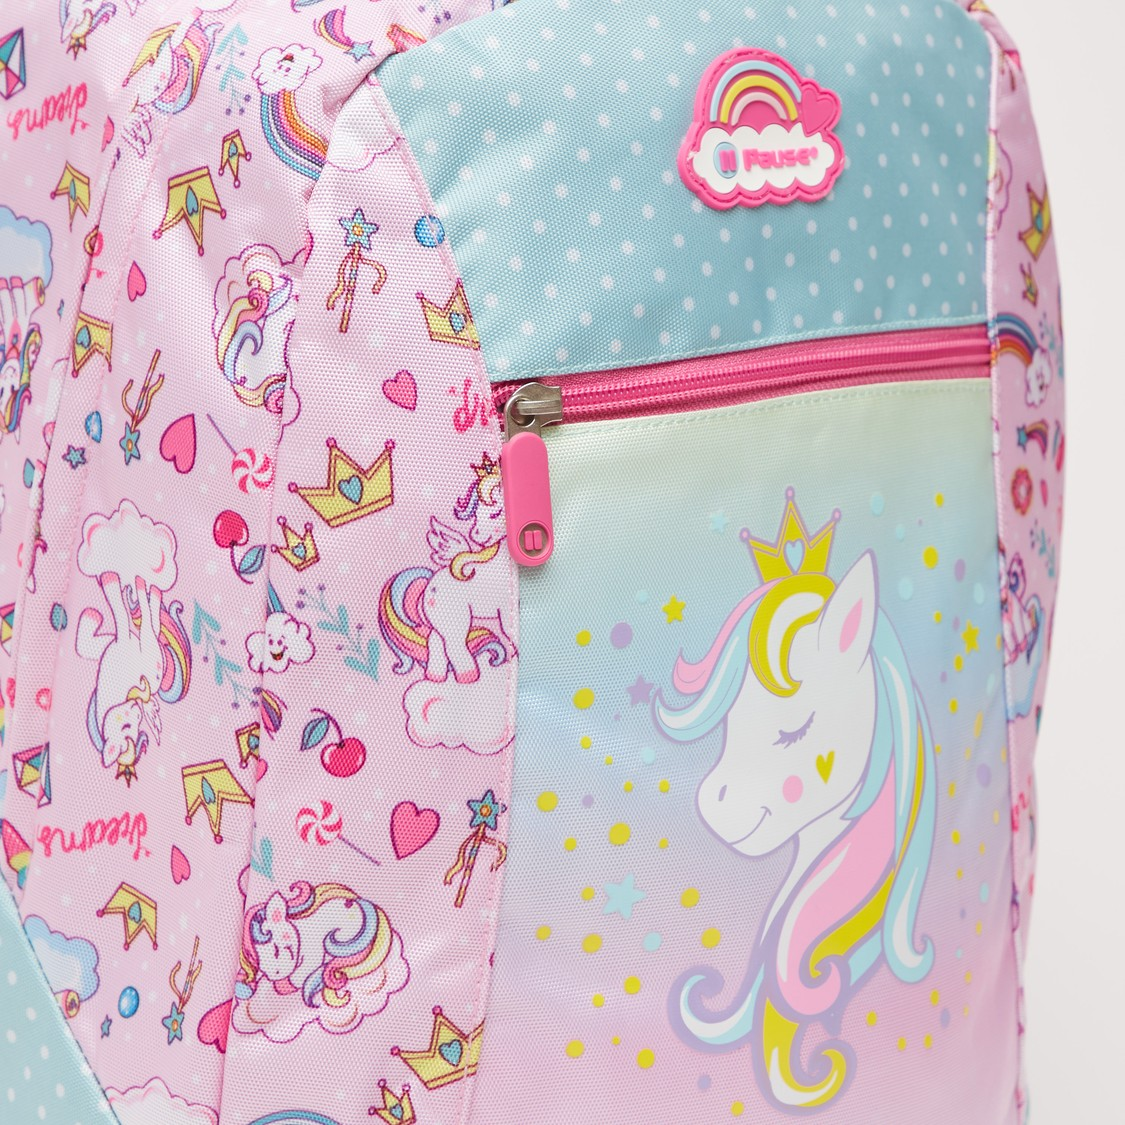 Unicorn Print Backpack with Adjustable Shoulder Straps - 16 Inches